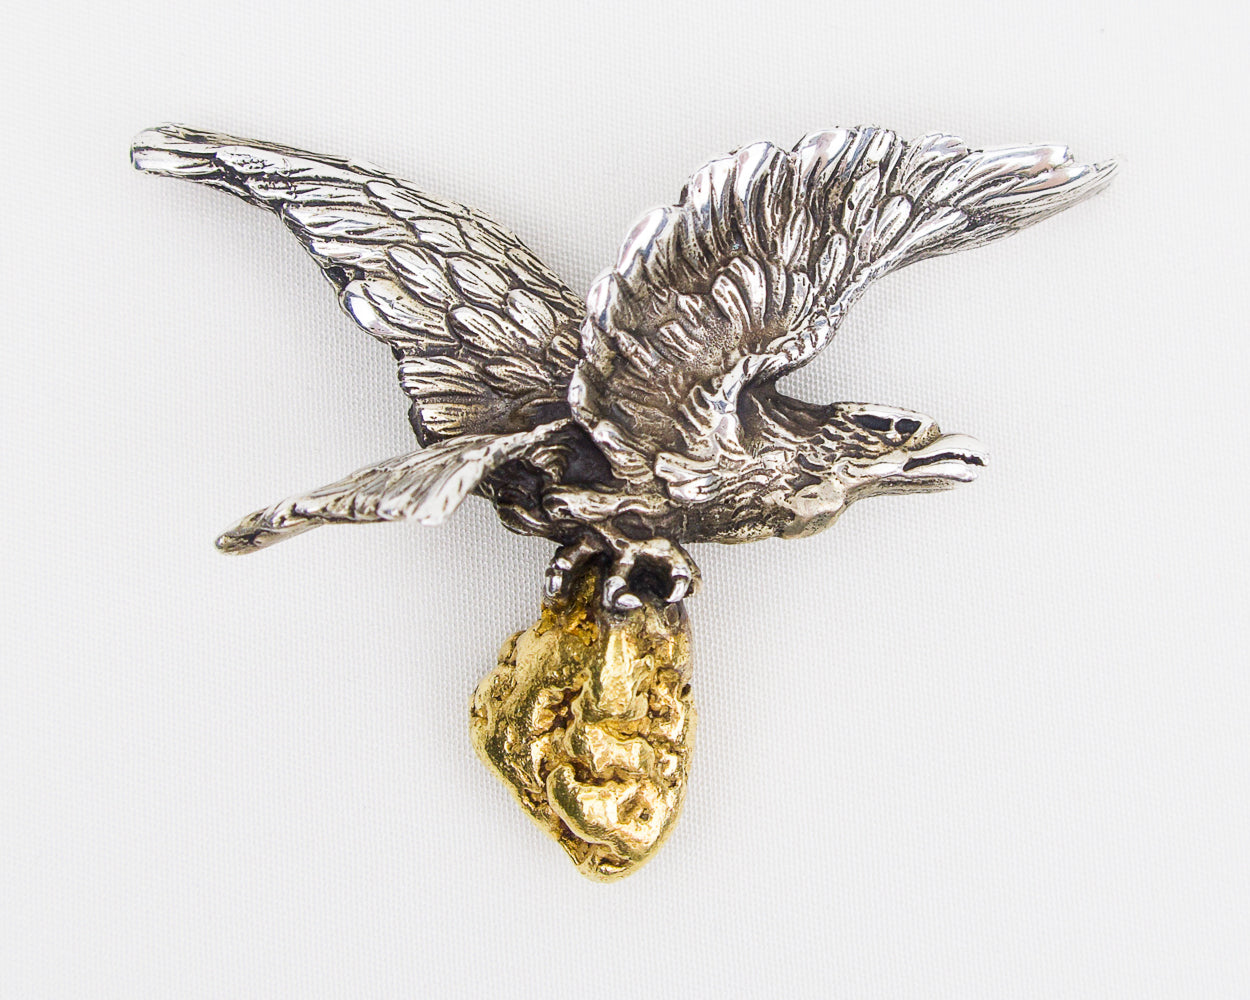 Midcentury Sterling Silver Eagle Pendant with Gold Nugget